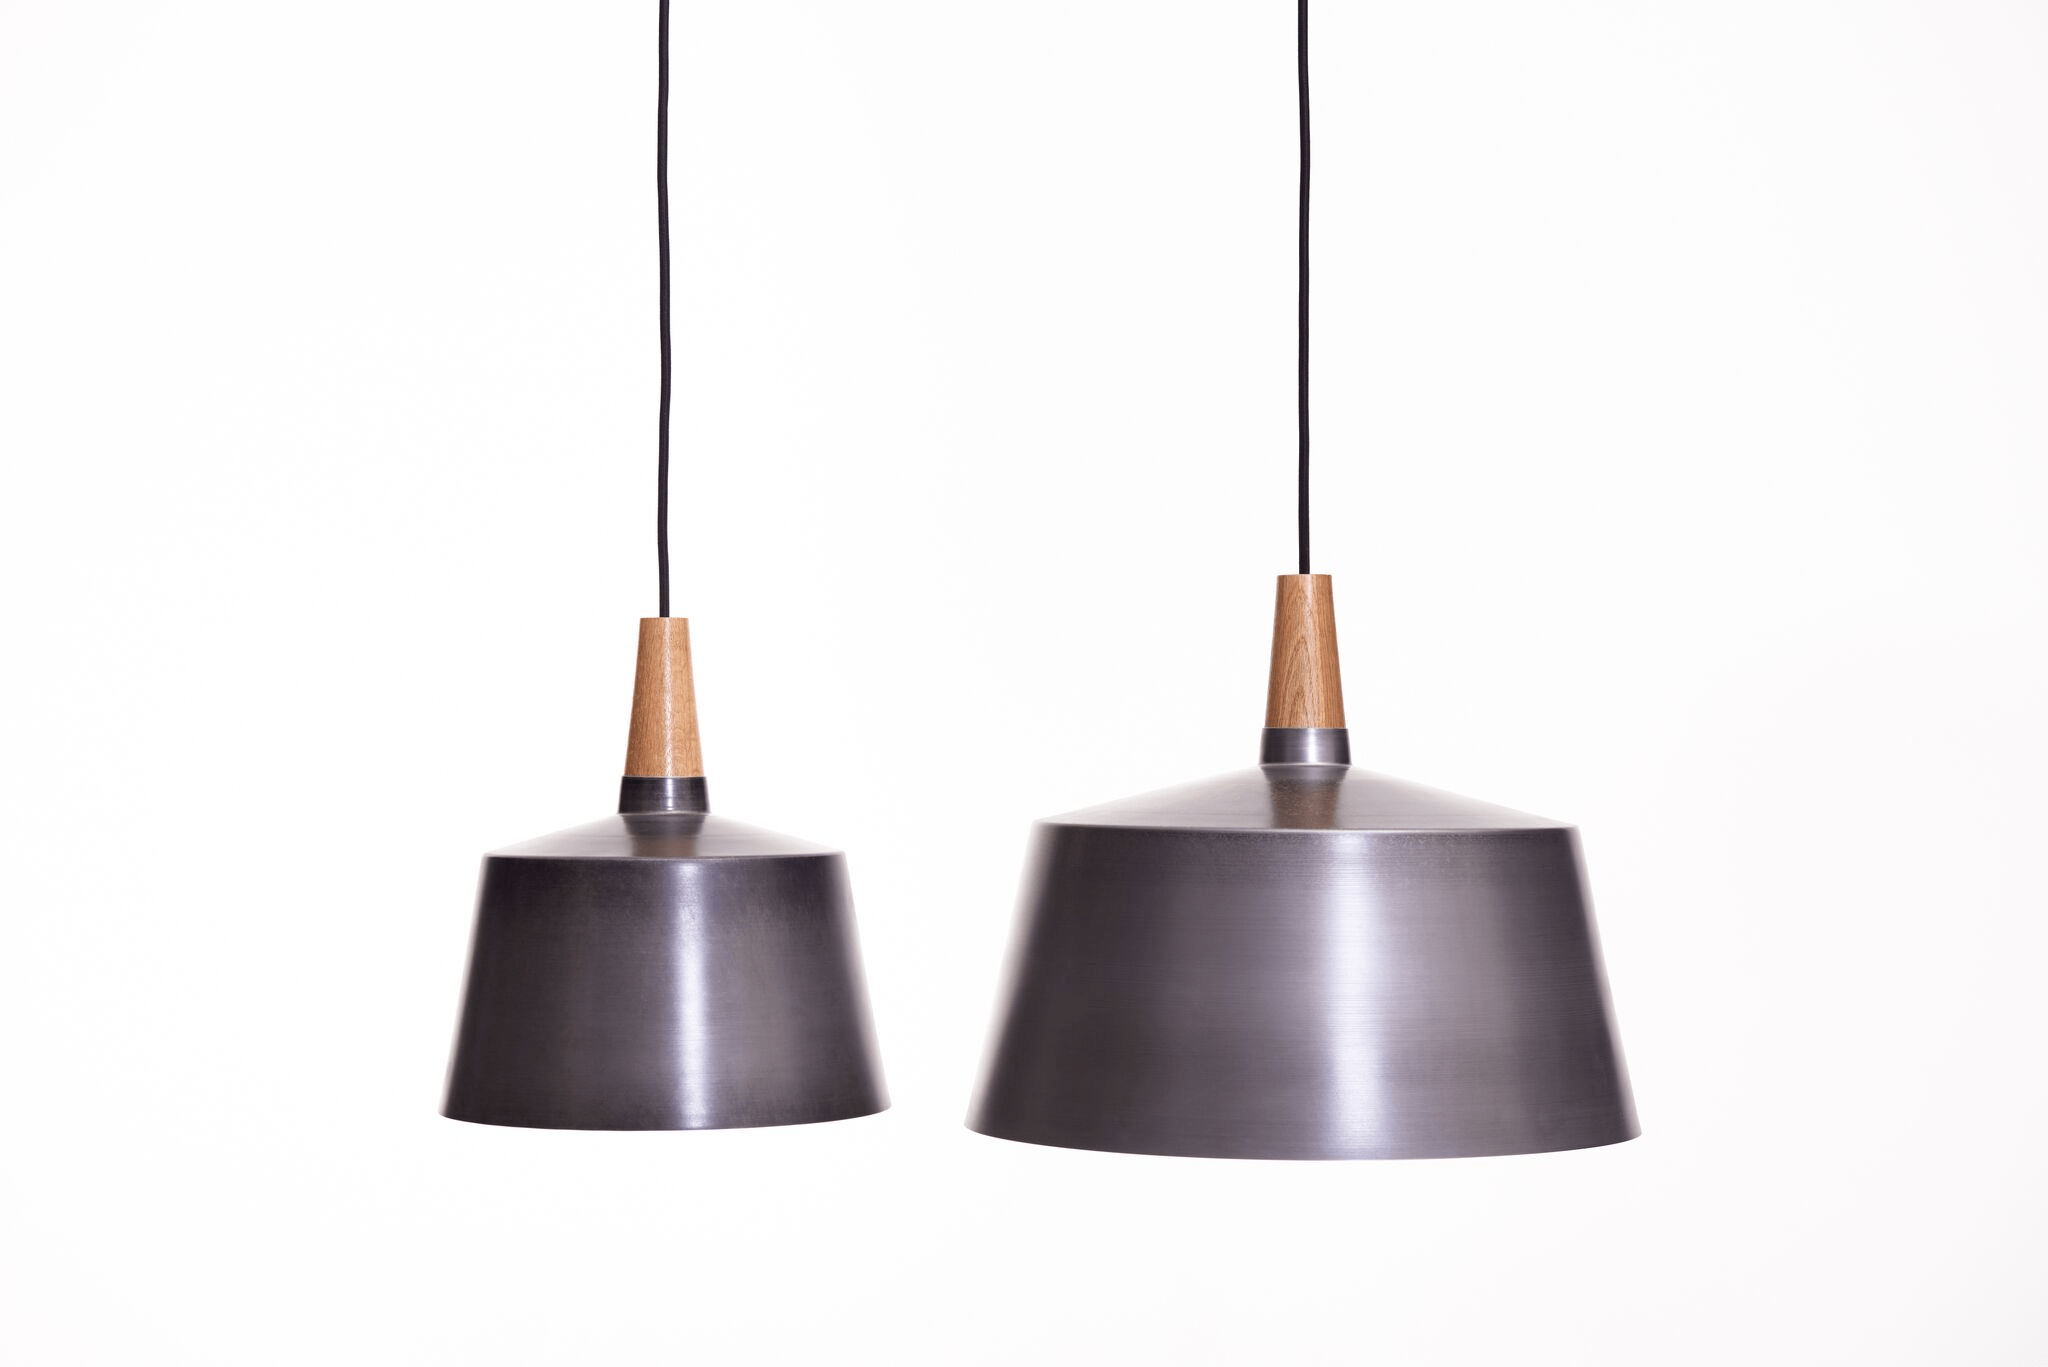 The Morse Pendant range by Apparentt is designed and manufactured in Melbourne.